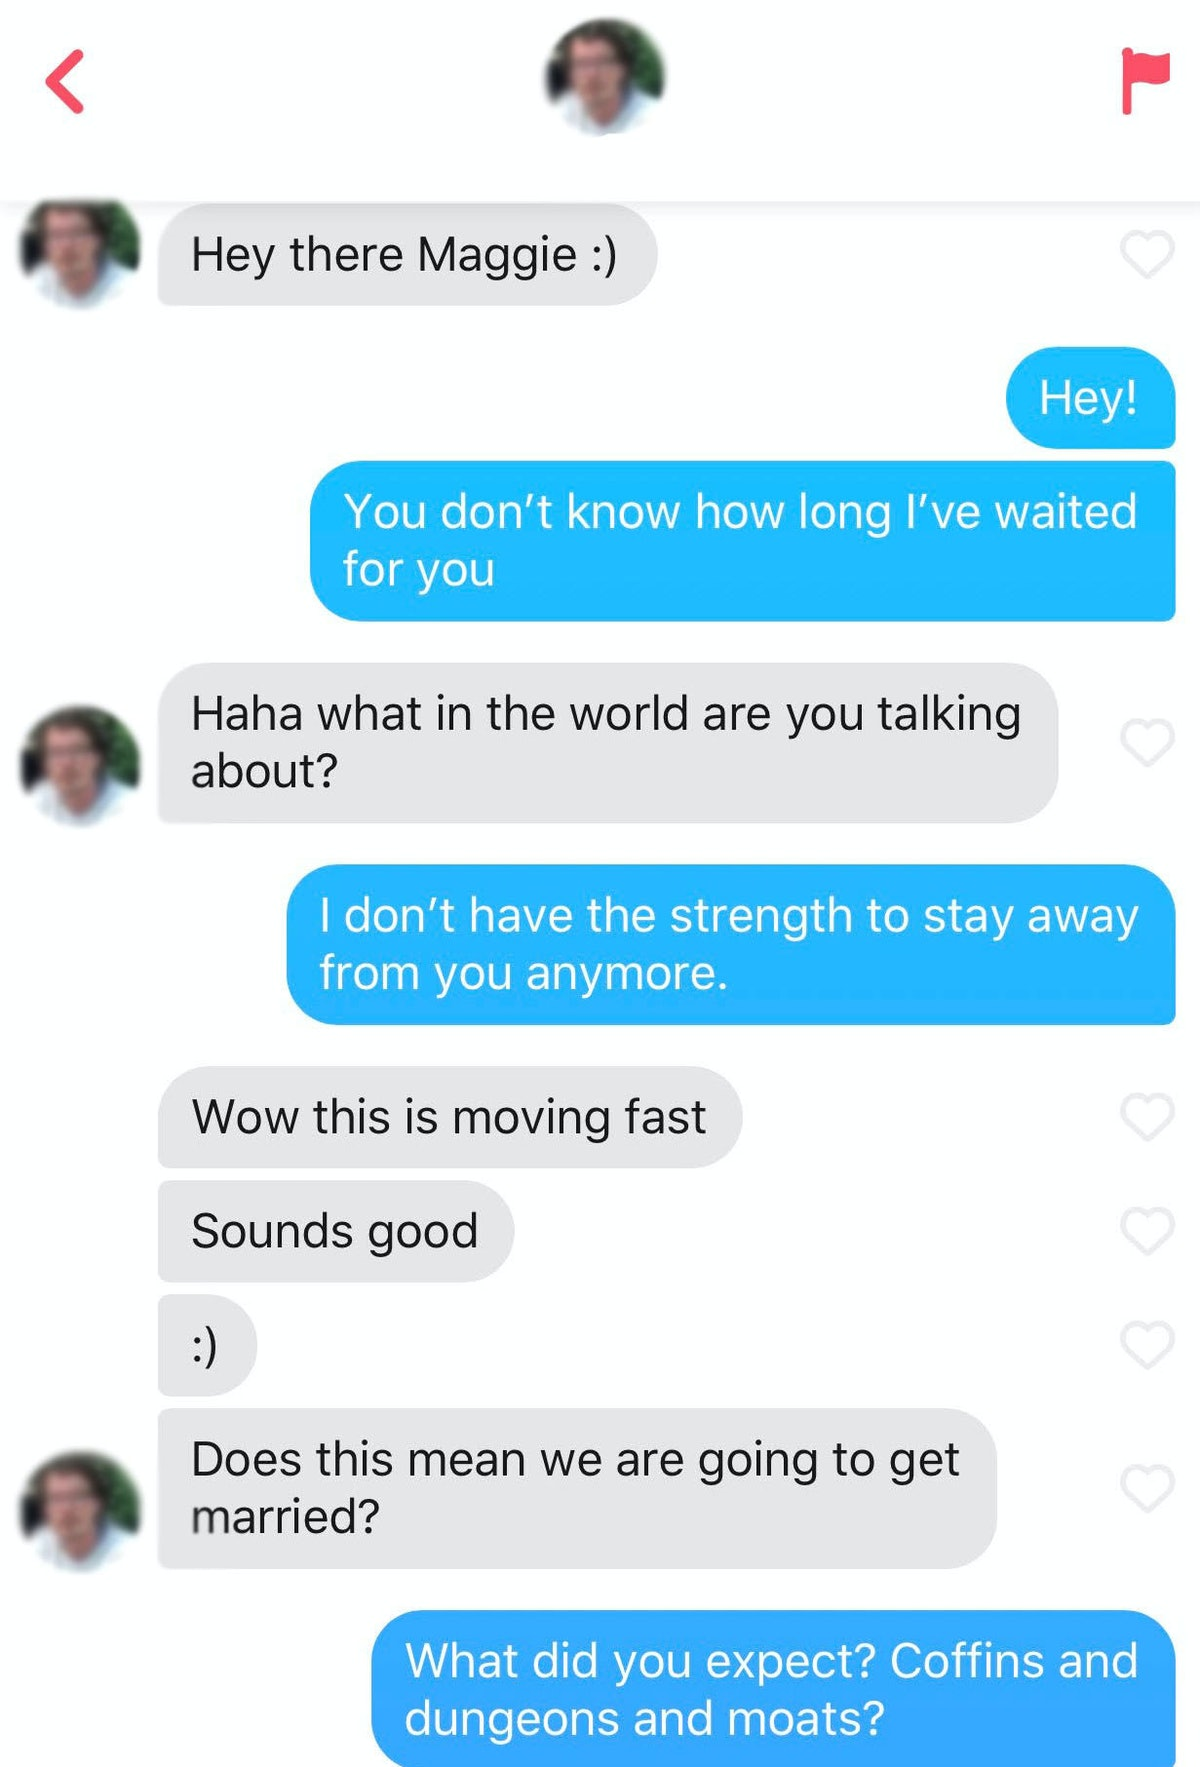 Sending Twilight quotes to Tinder matches can get playful.